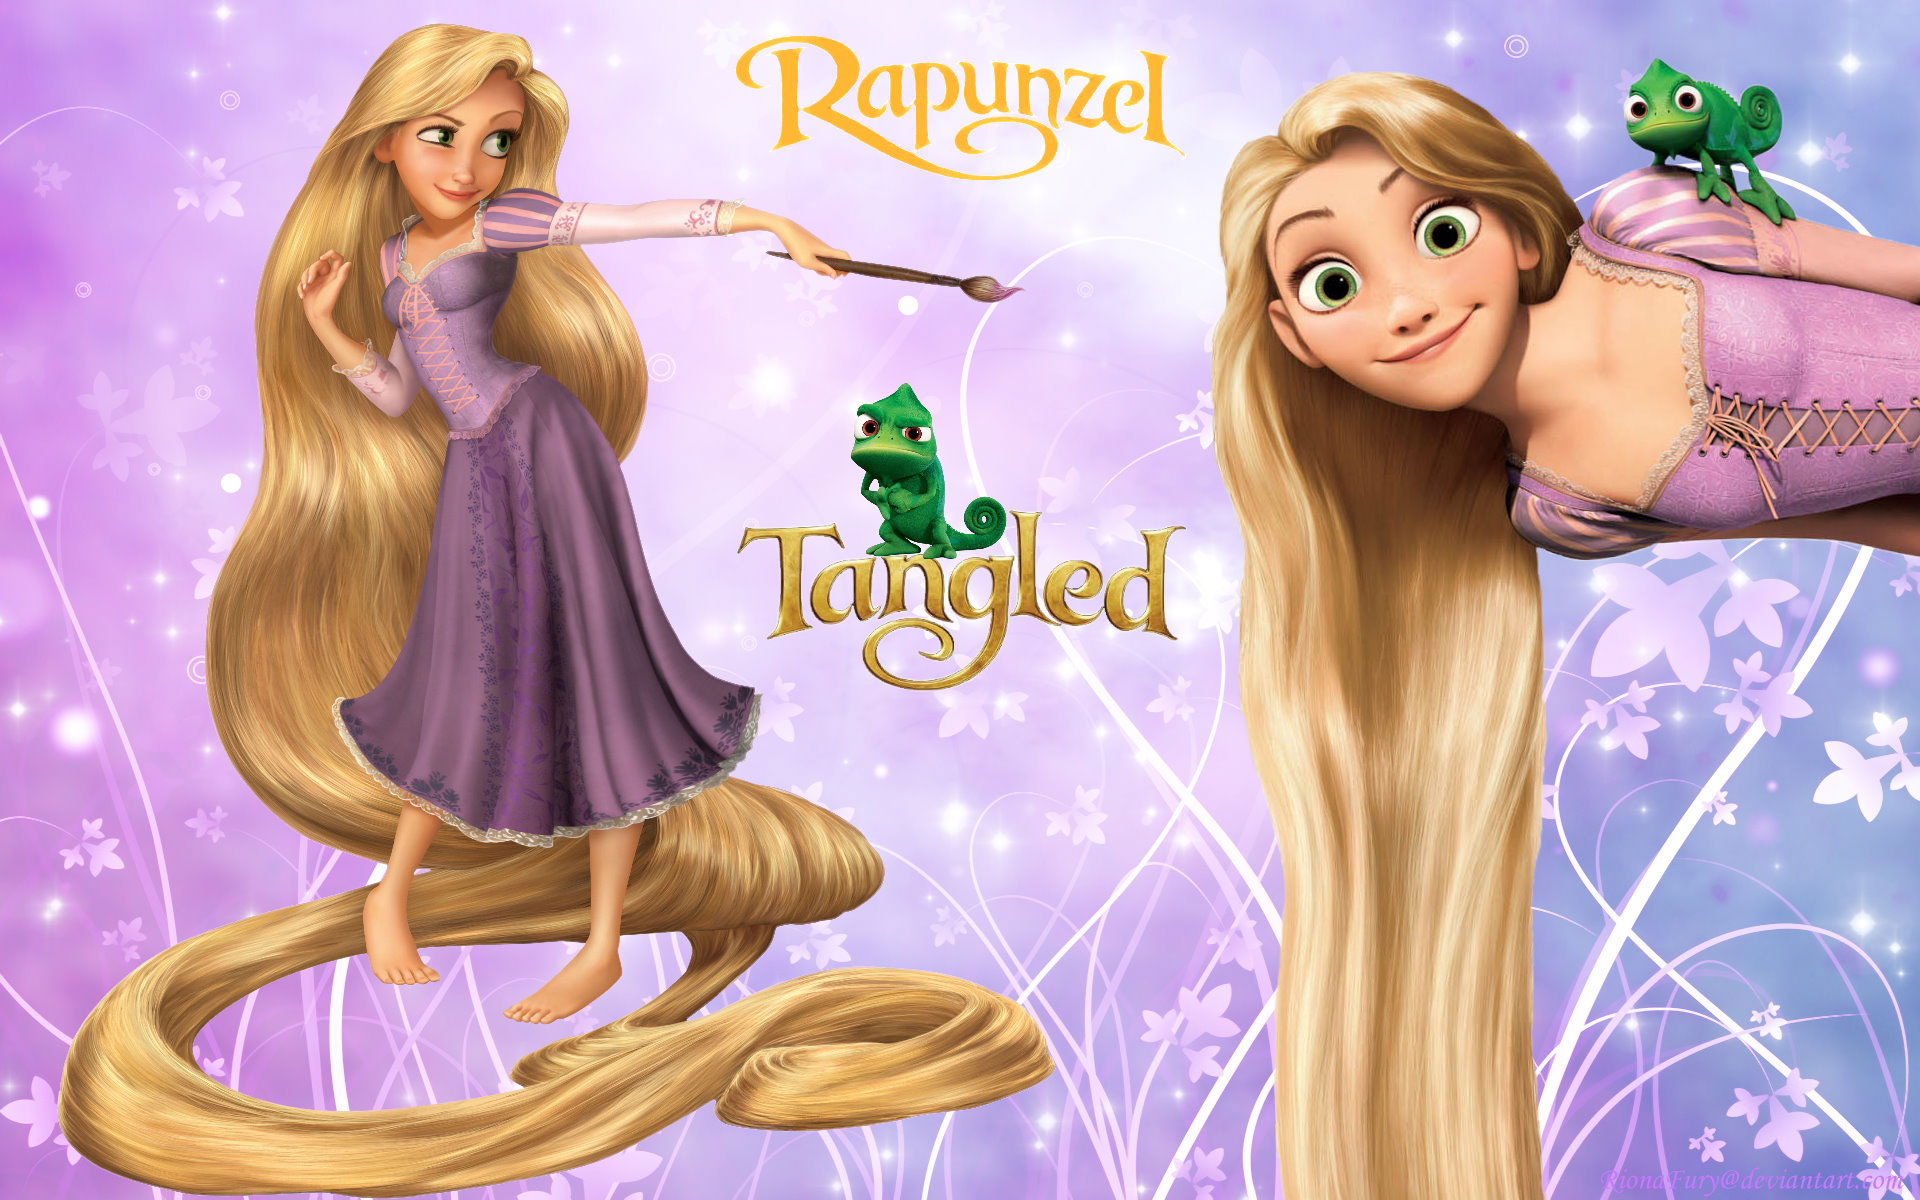 rapunzel rapunzel Shop for rapunzel costume online at target free shipping on purchases over $35 and save 5% every day with your target redcard.